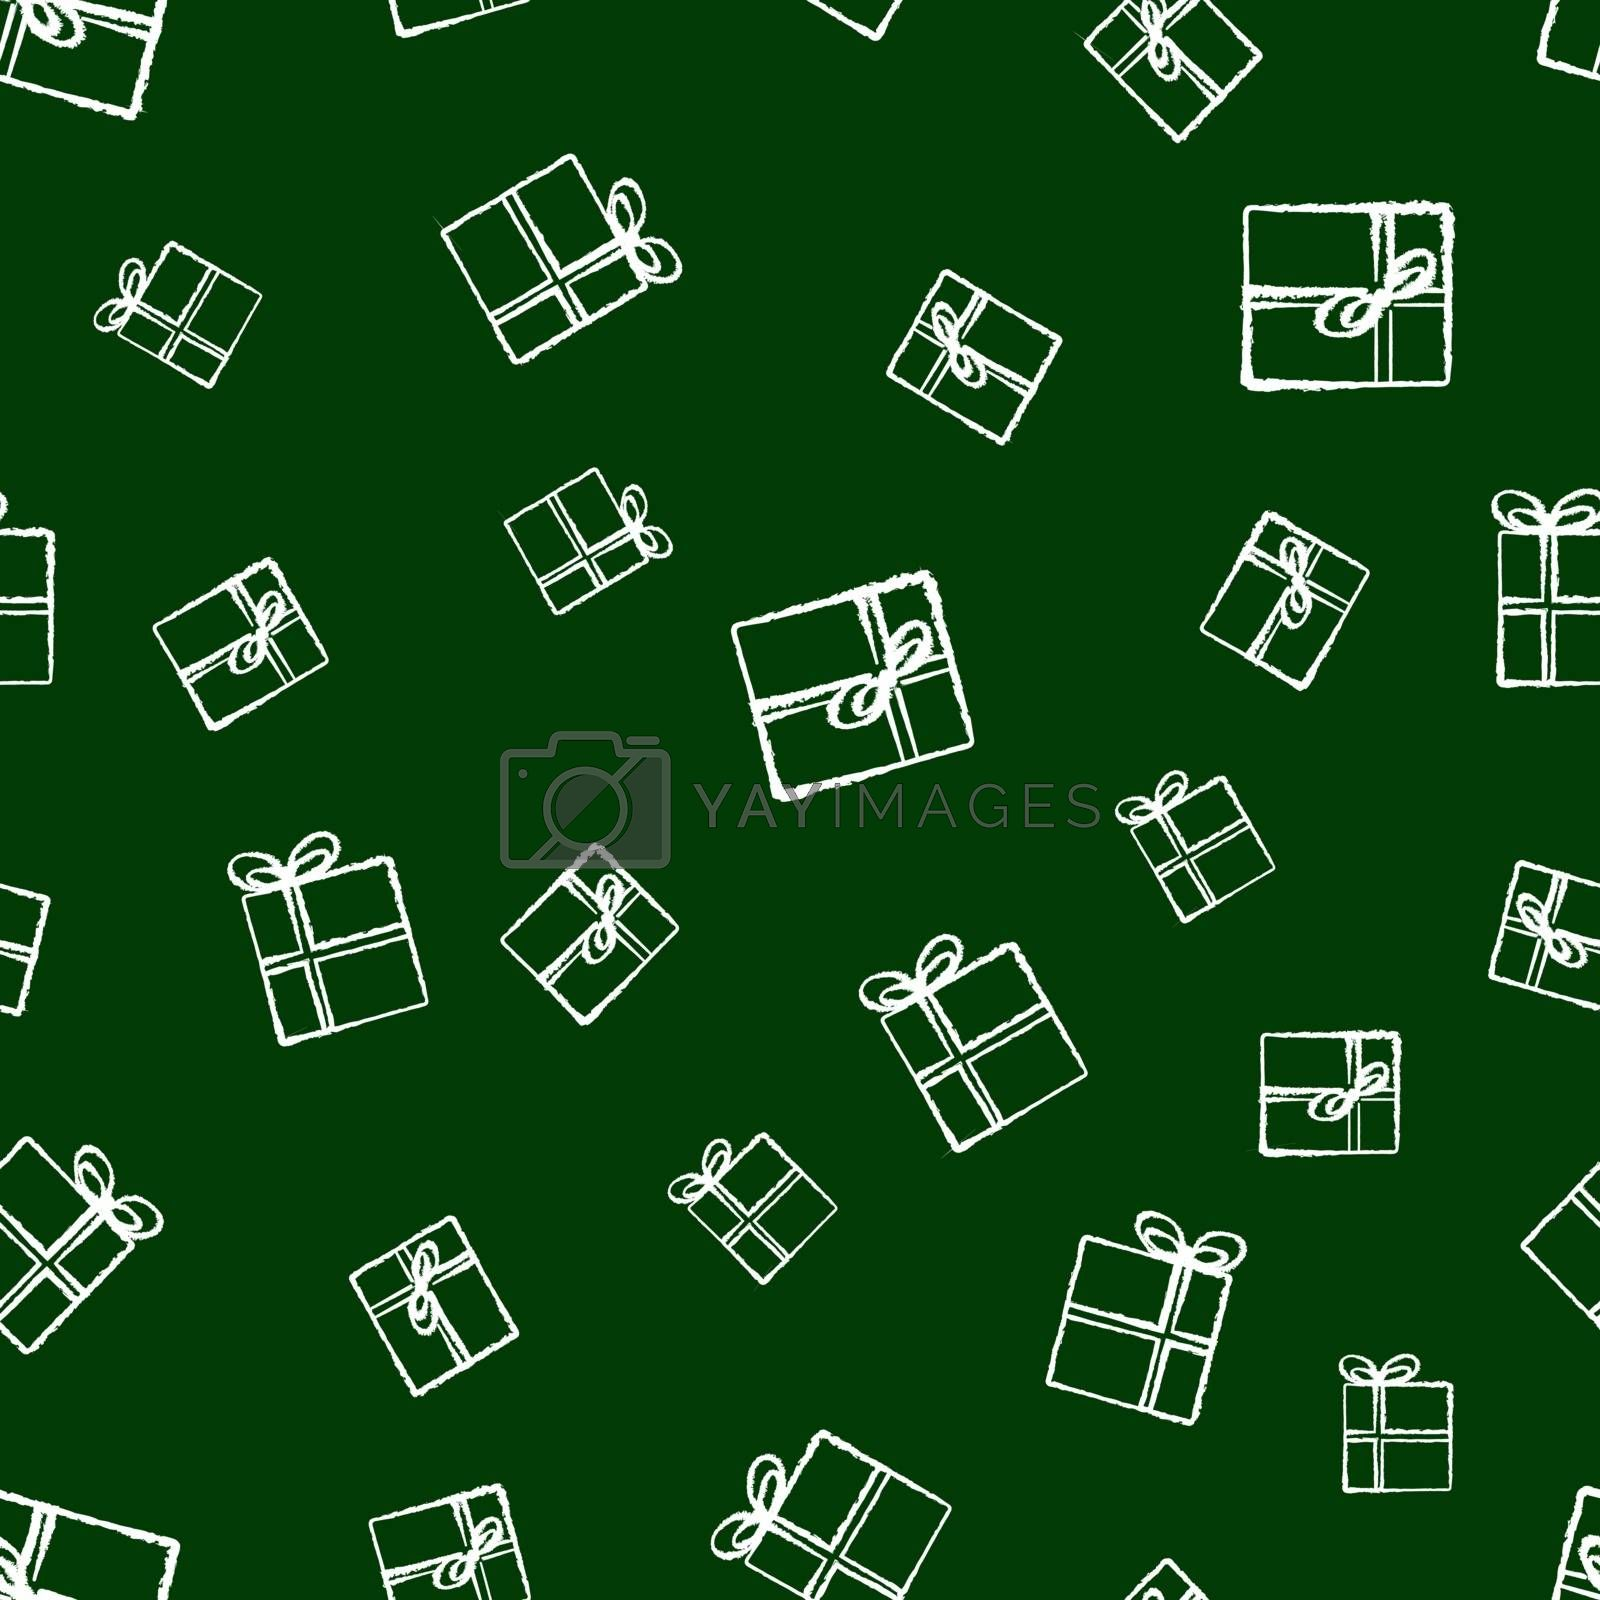 christmas gifts vector seamless pattern. hand-drawn in chalk gift boxes on a dark green background. festive design of wrapping, textile, cards, decor, minimal scandinavian style